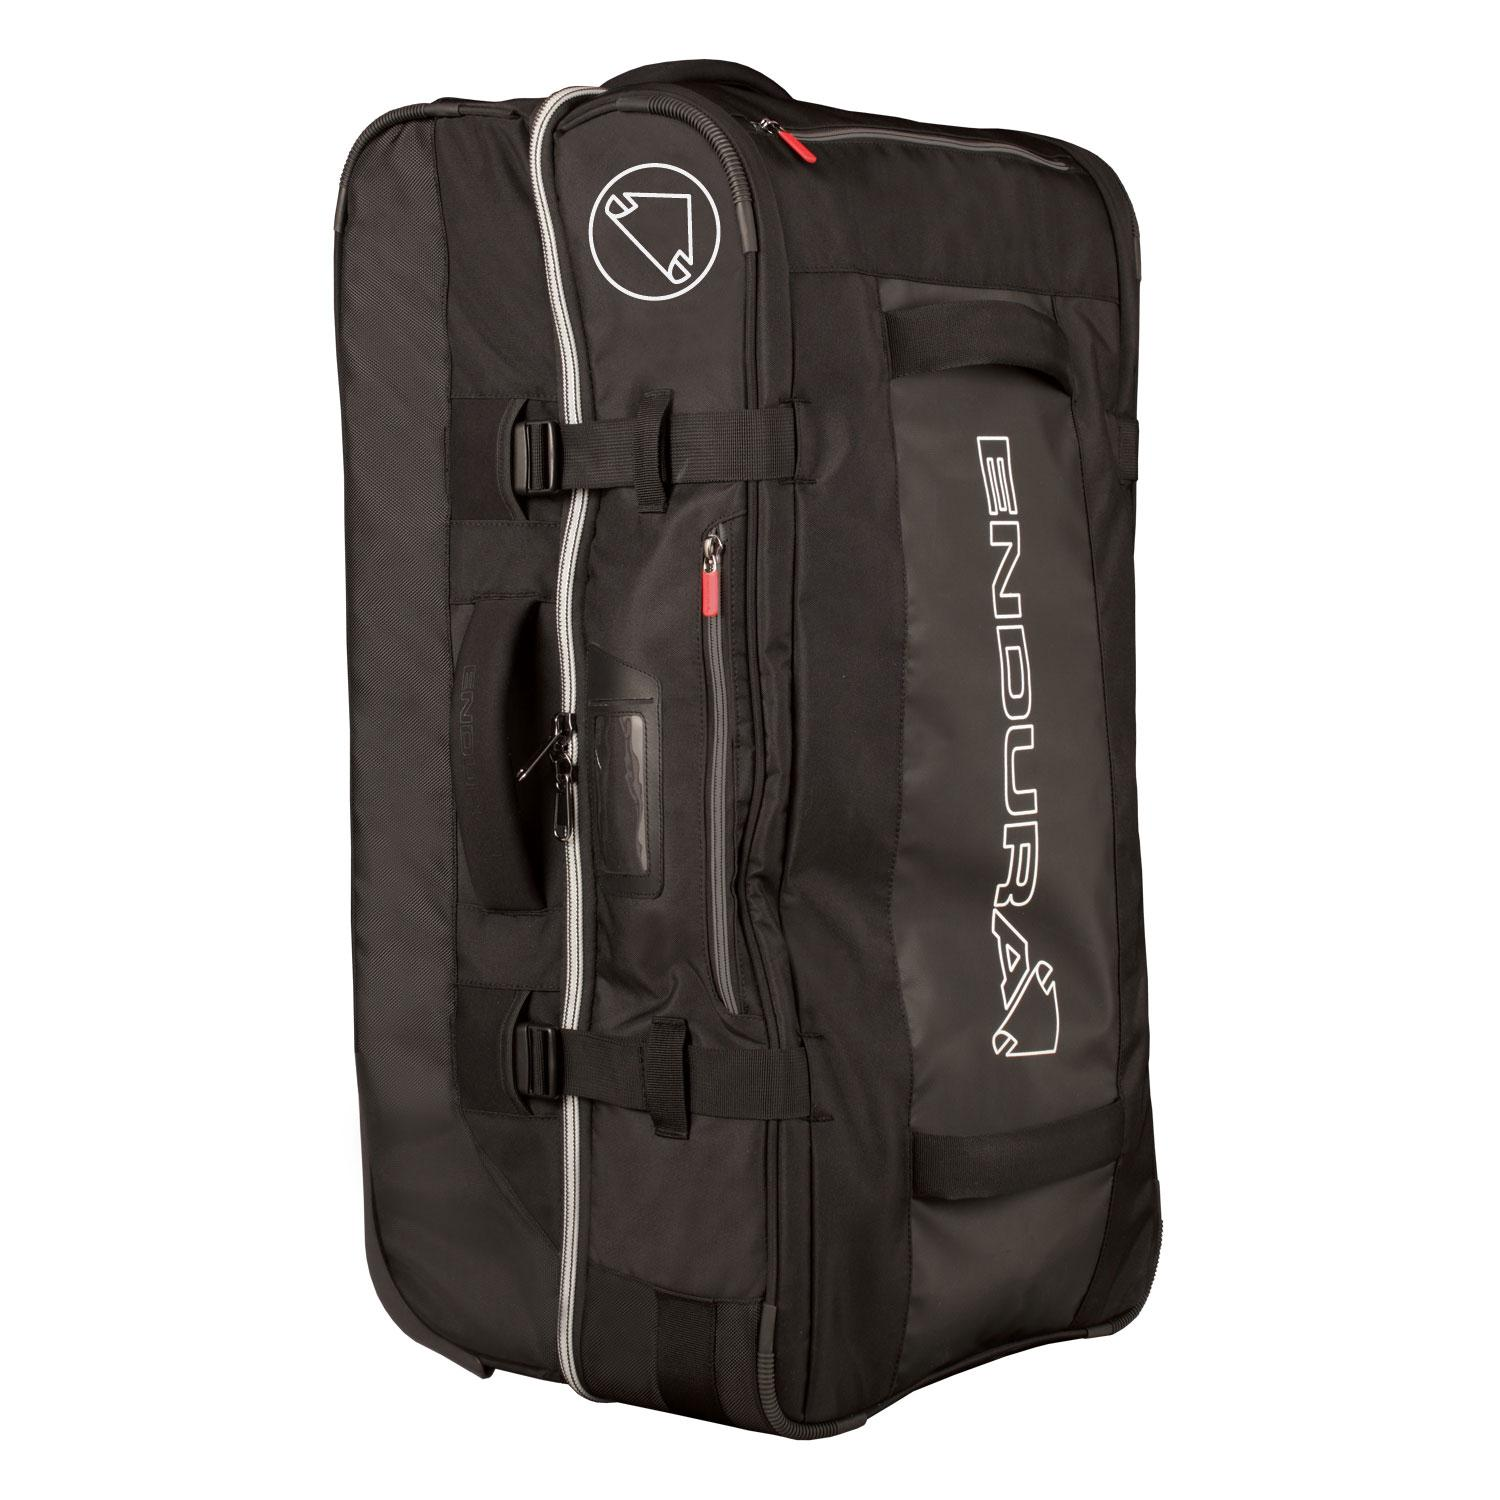 Endura Reistas Unisex Zwart - Roller Kit Bag Black